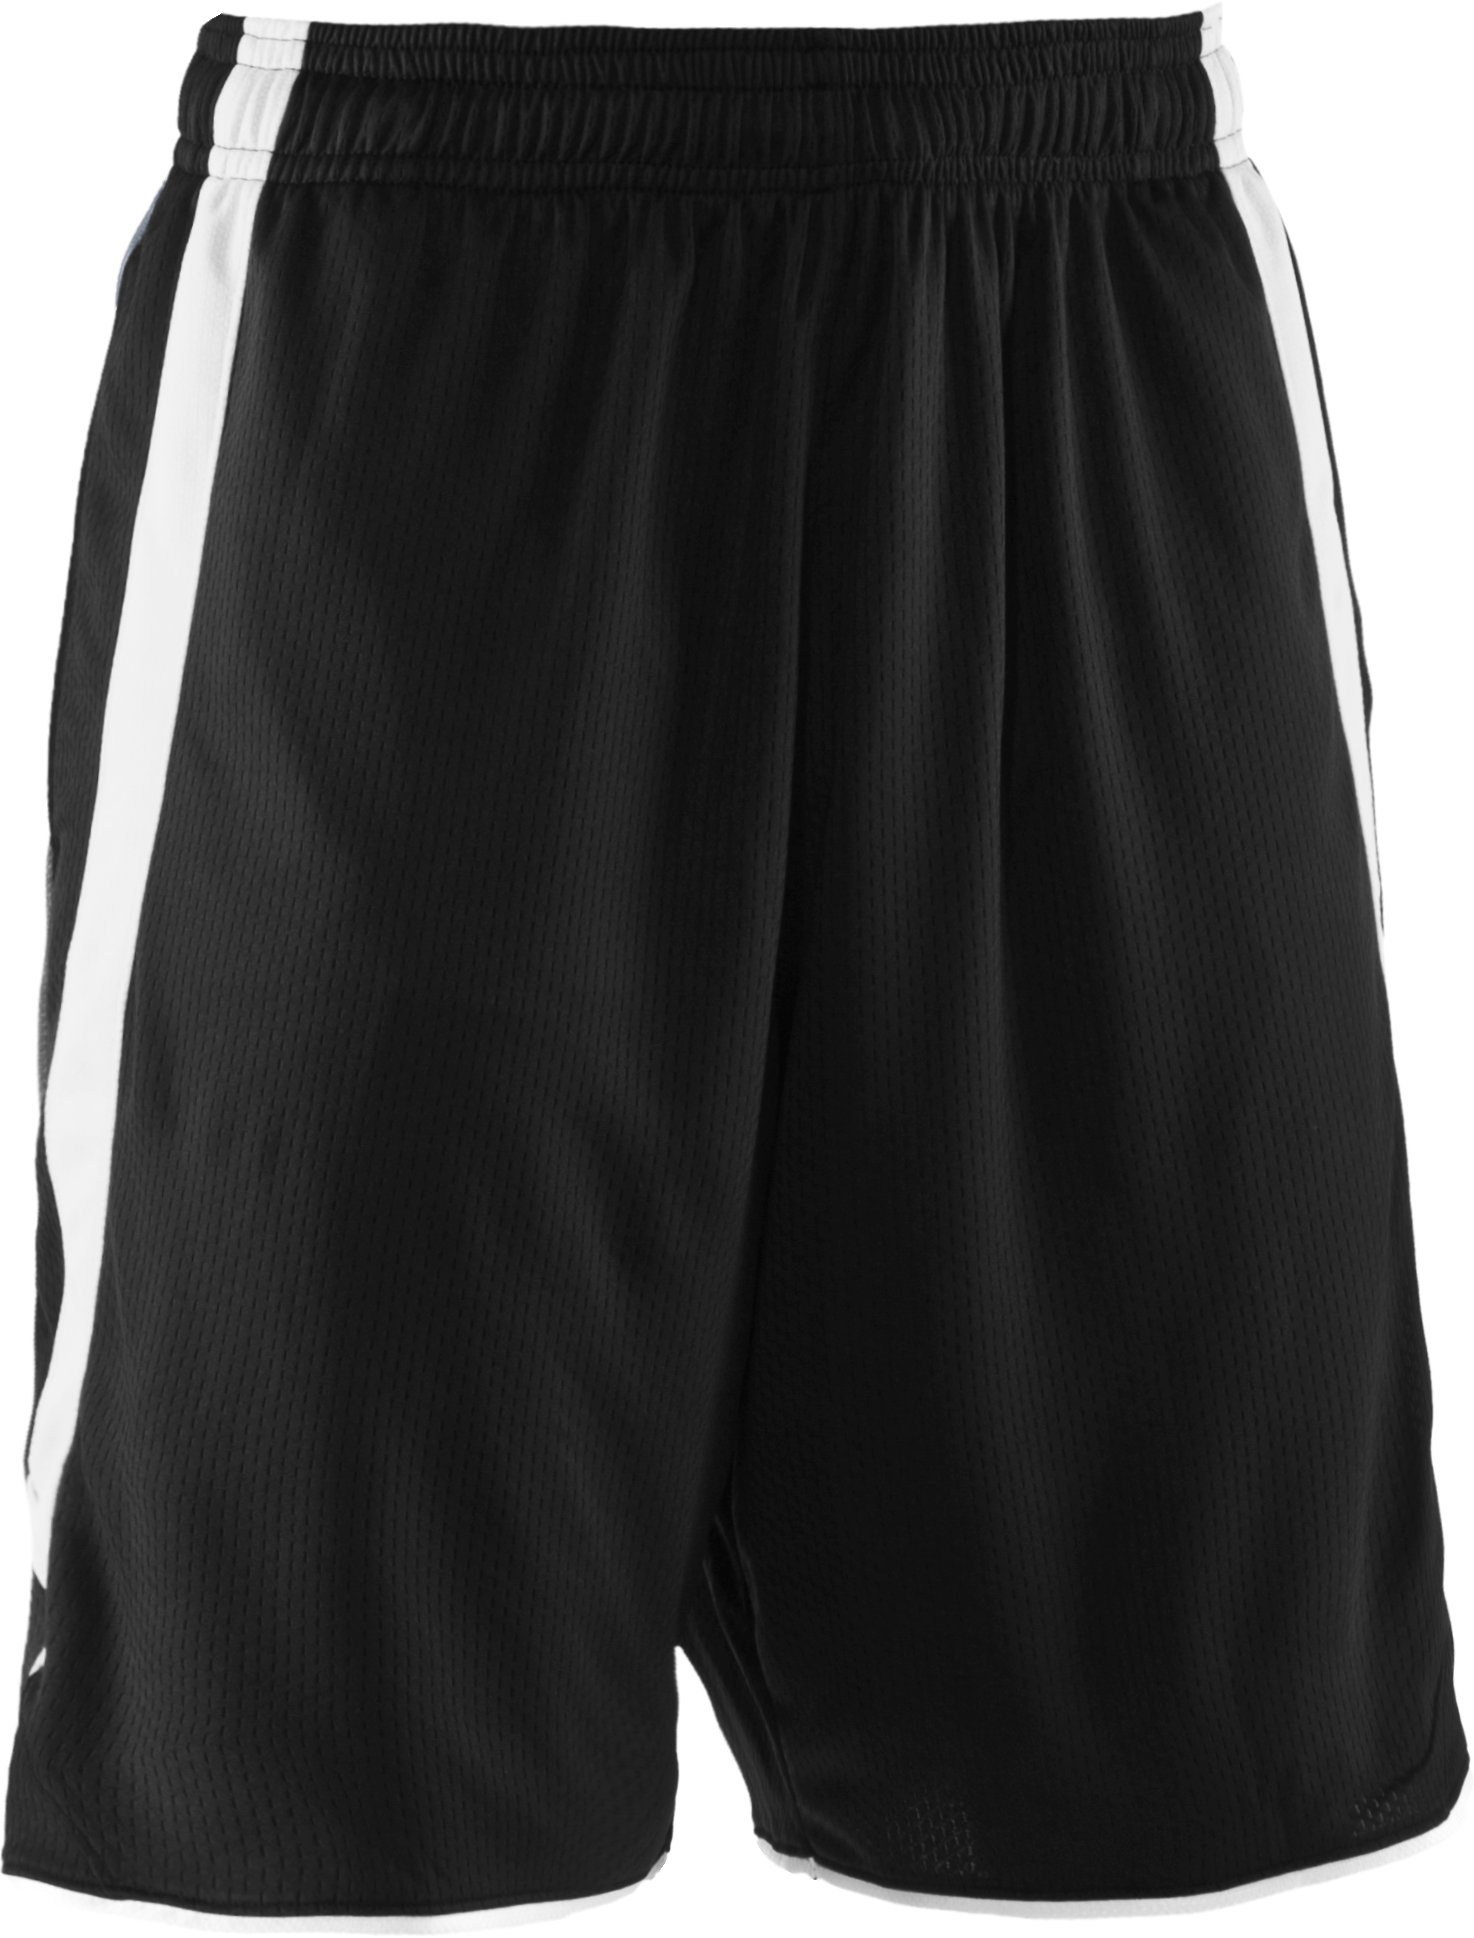 "Men's UA Finger Roll 10"" Basketball Shorts, Black"